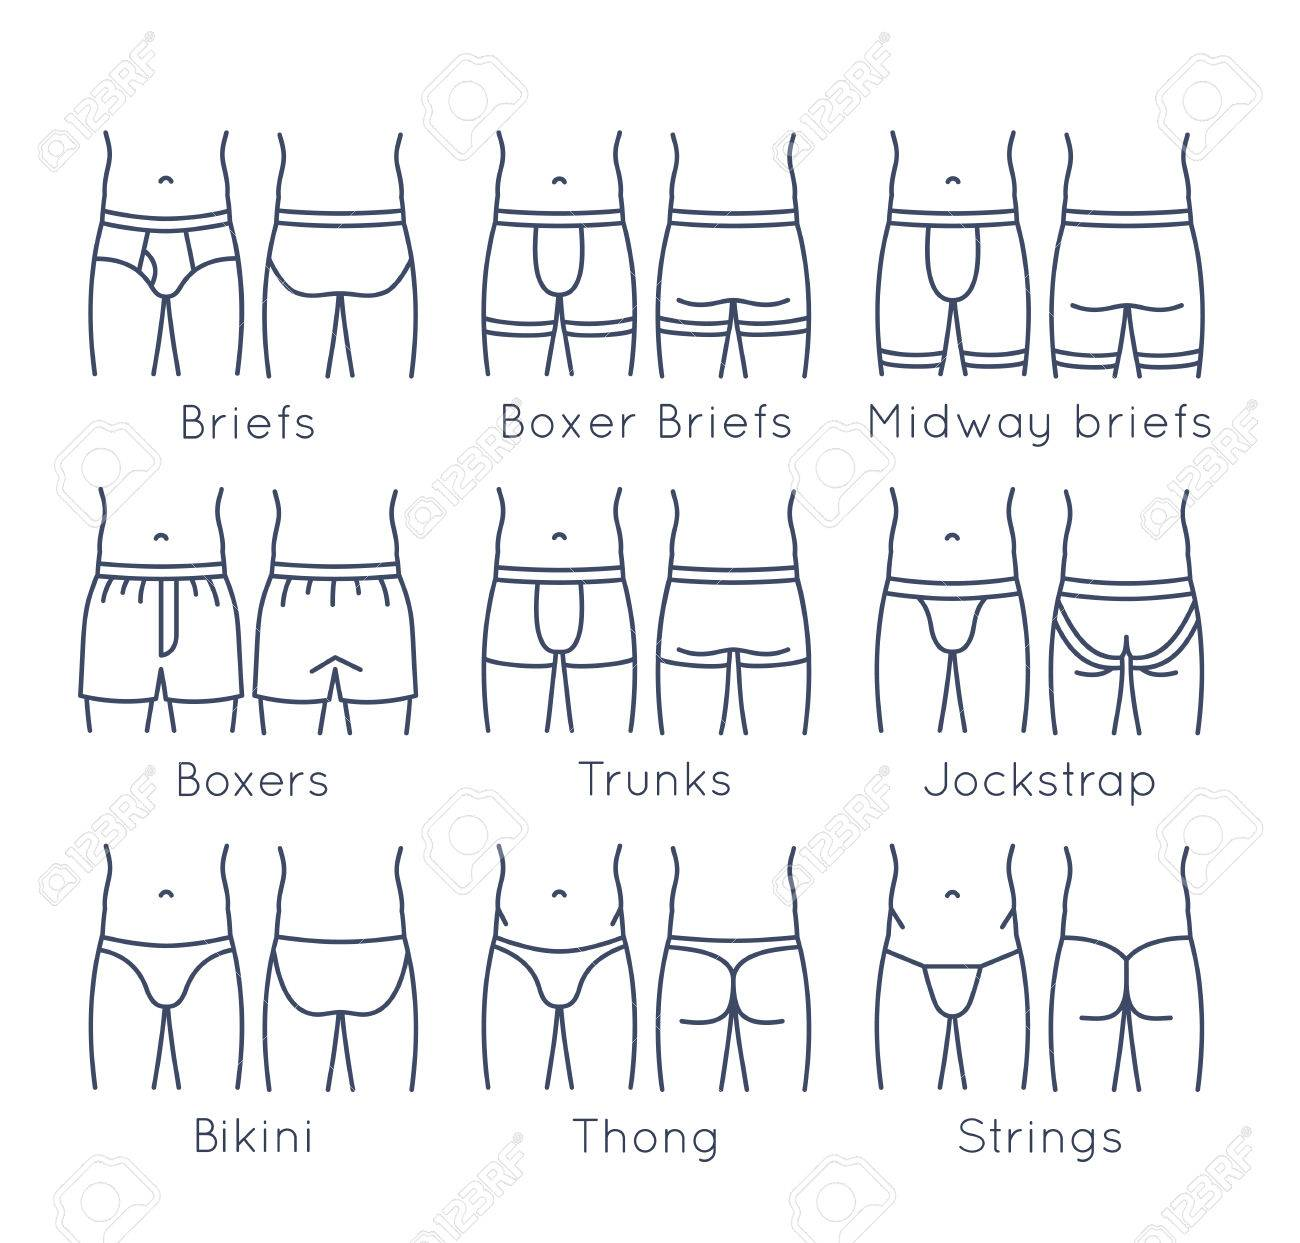 Male underwear types flat line icons set. Modern man briefs fashion styles on torso figures. Front, back view. Underclothes linear infographic design elements. Isolated clothes pictogram - 58596821